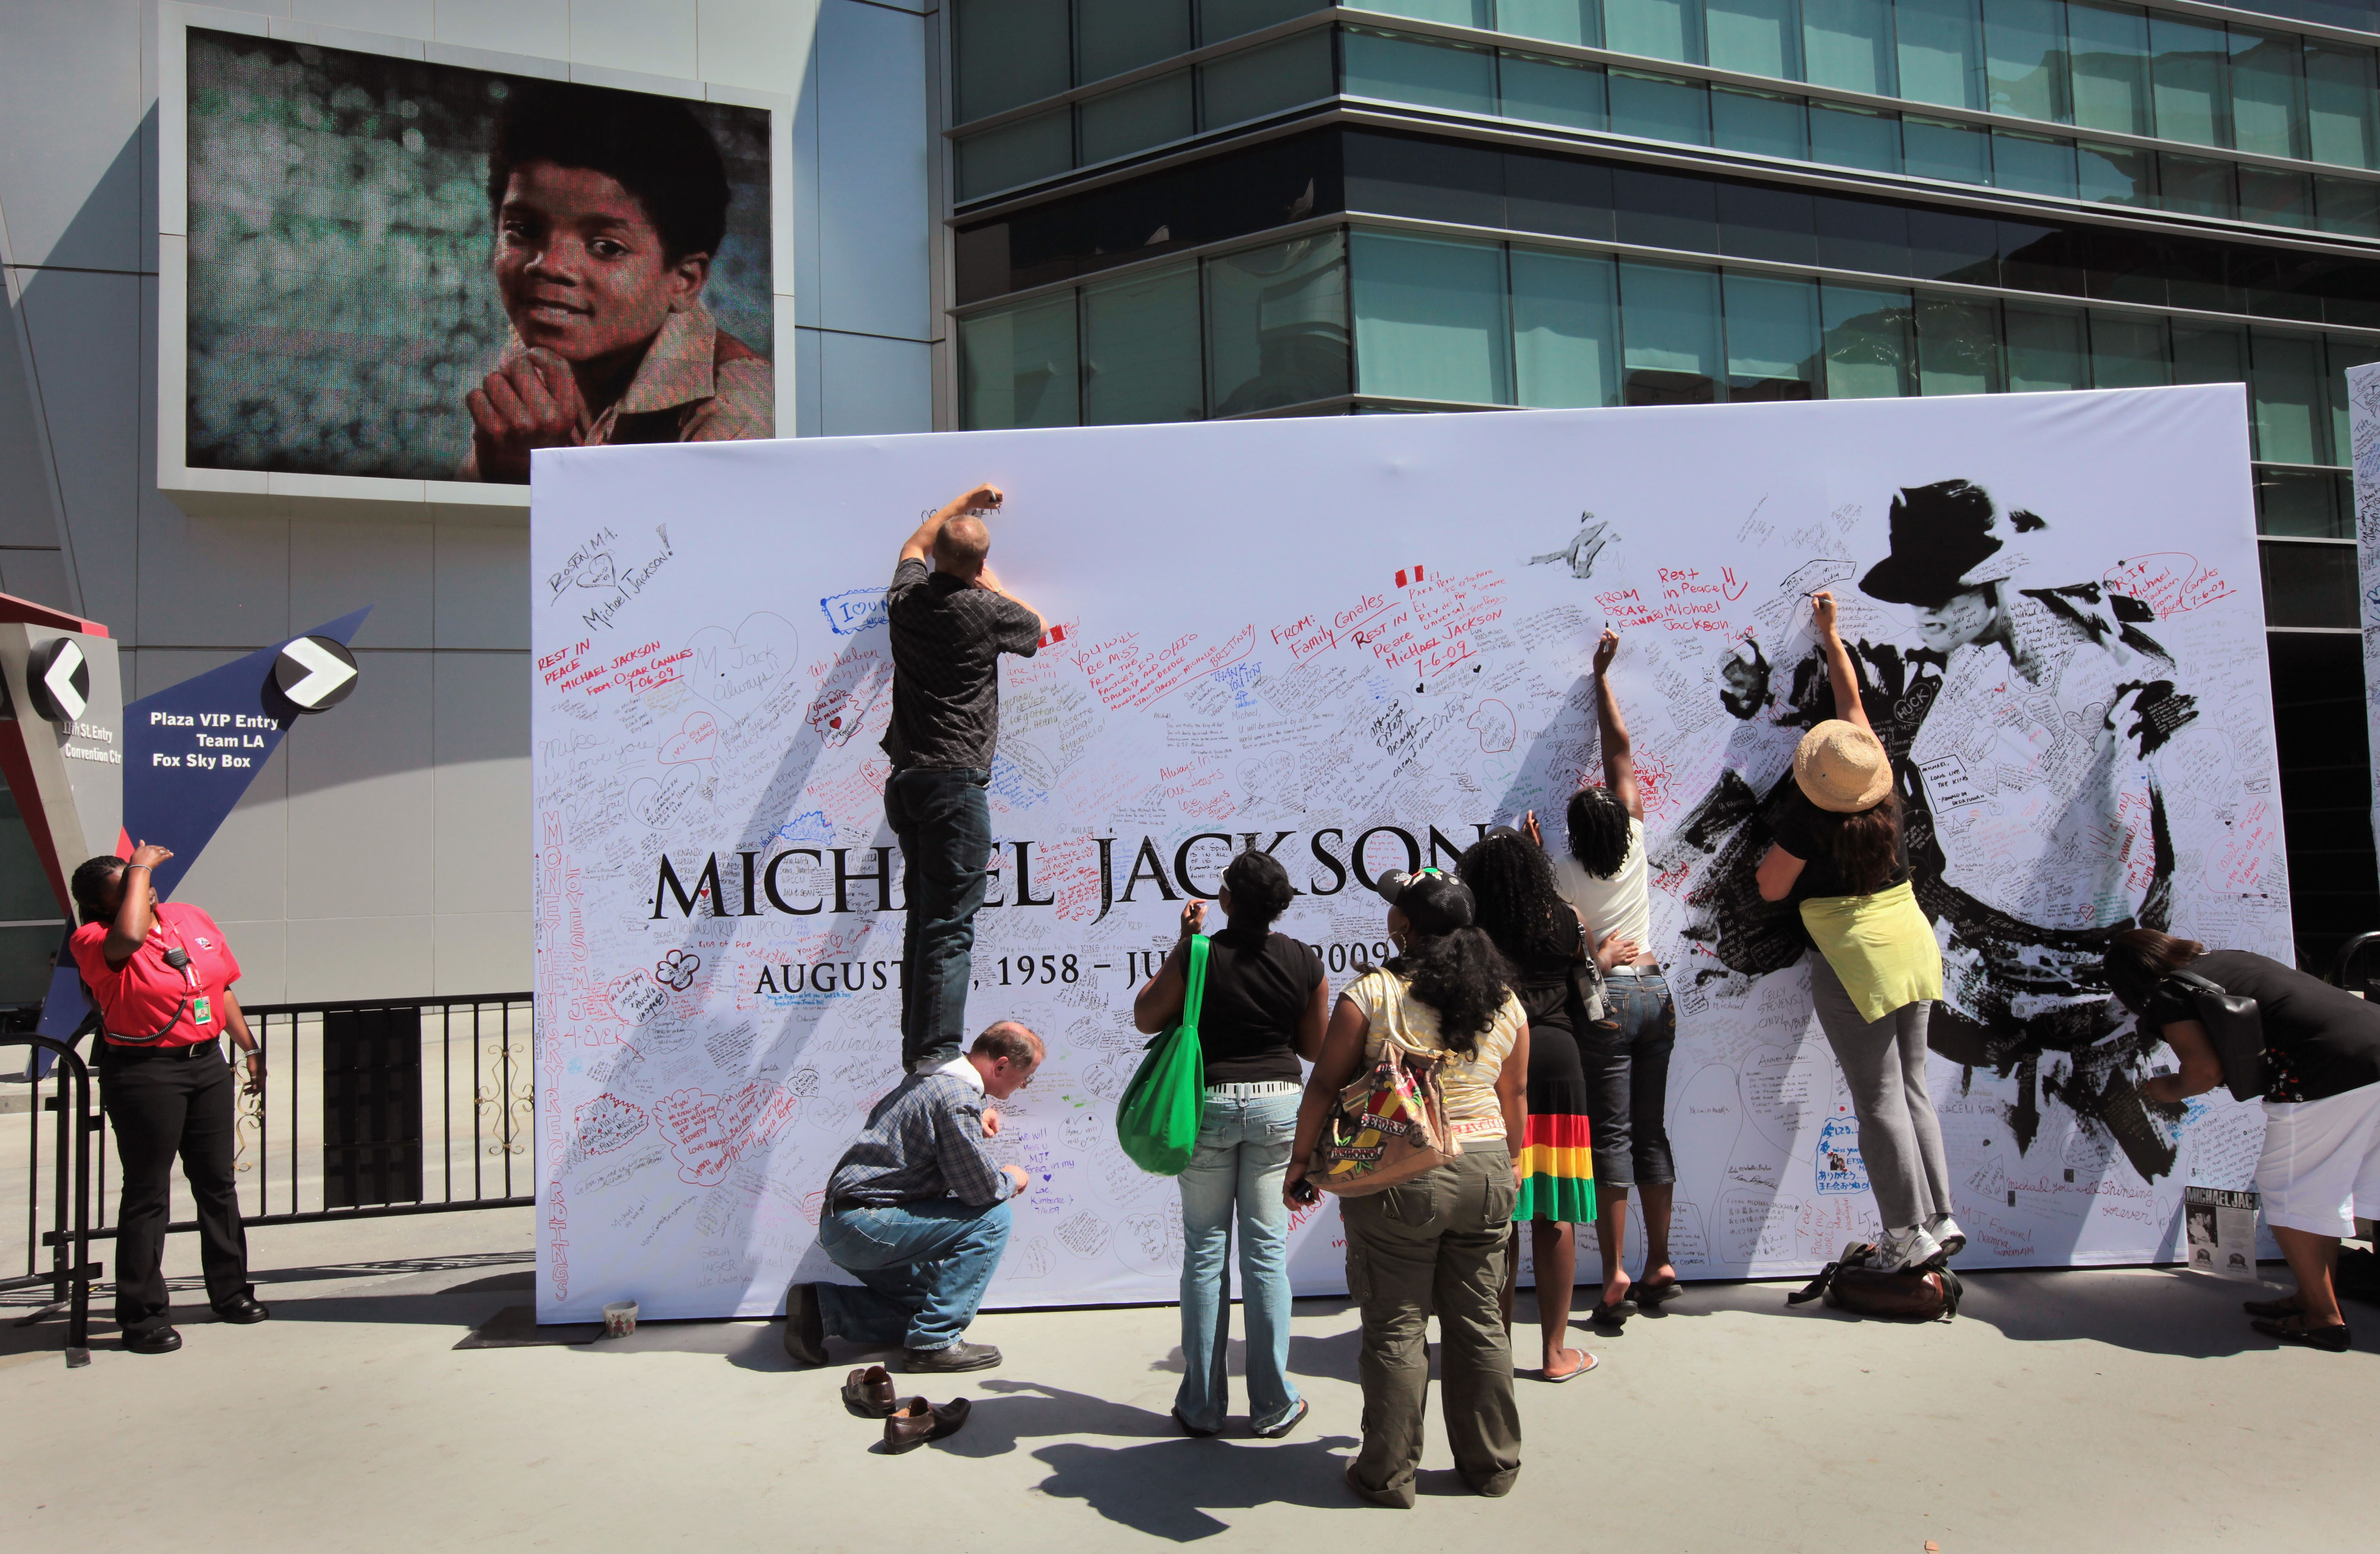 (Getty Images) Fans sign a Michael Jackson poster covered in messages outside the Staples Center.